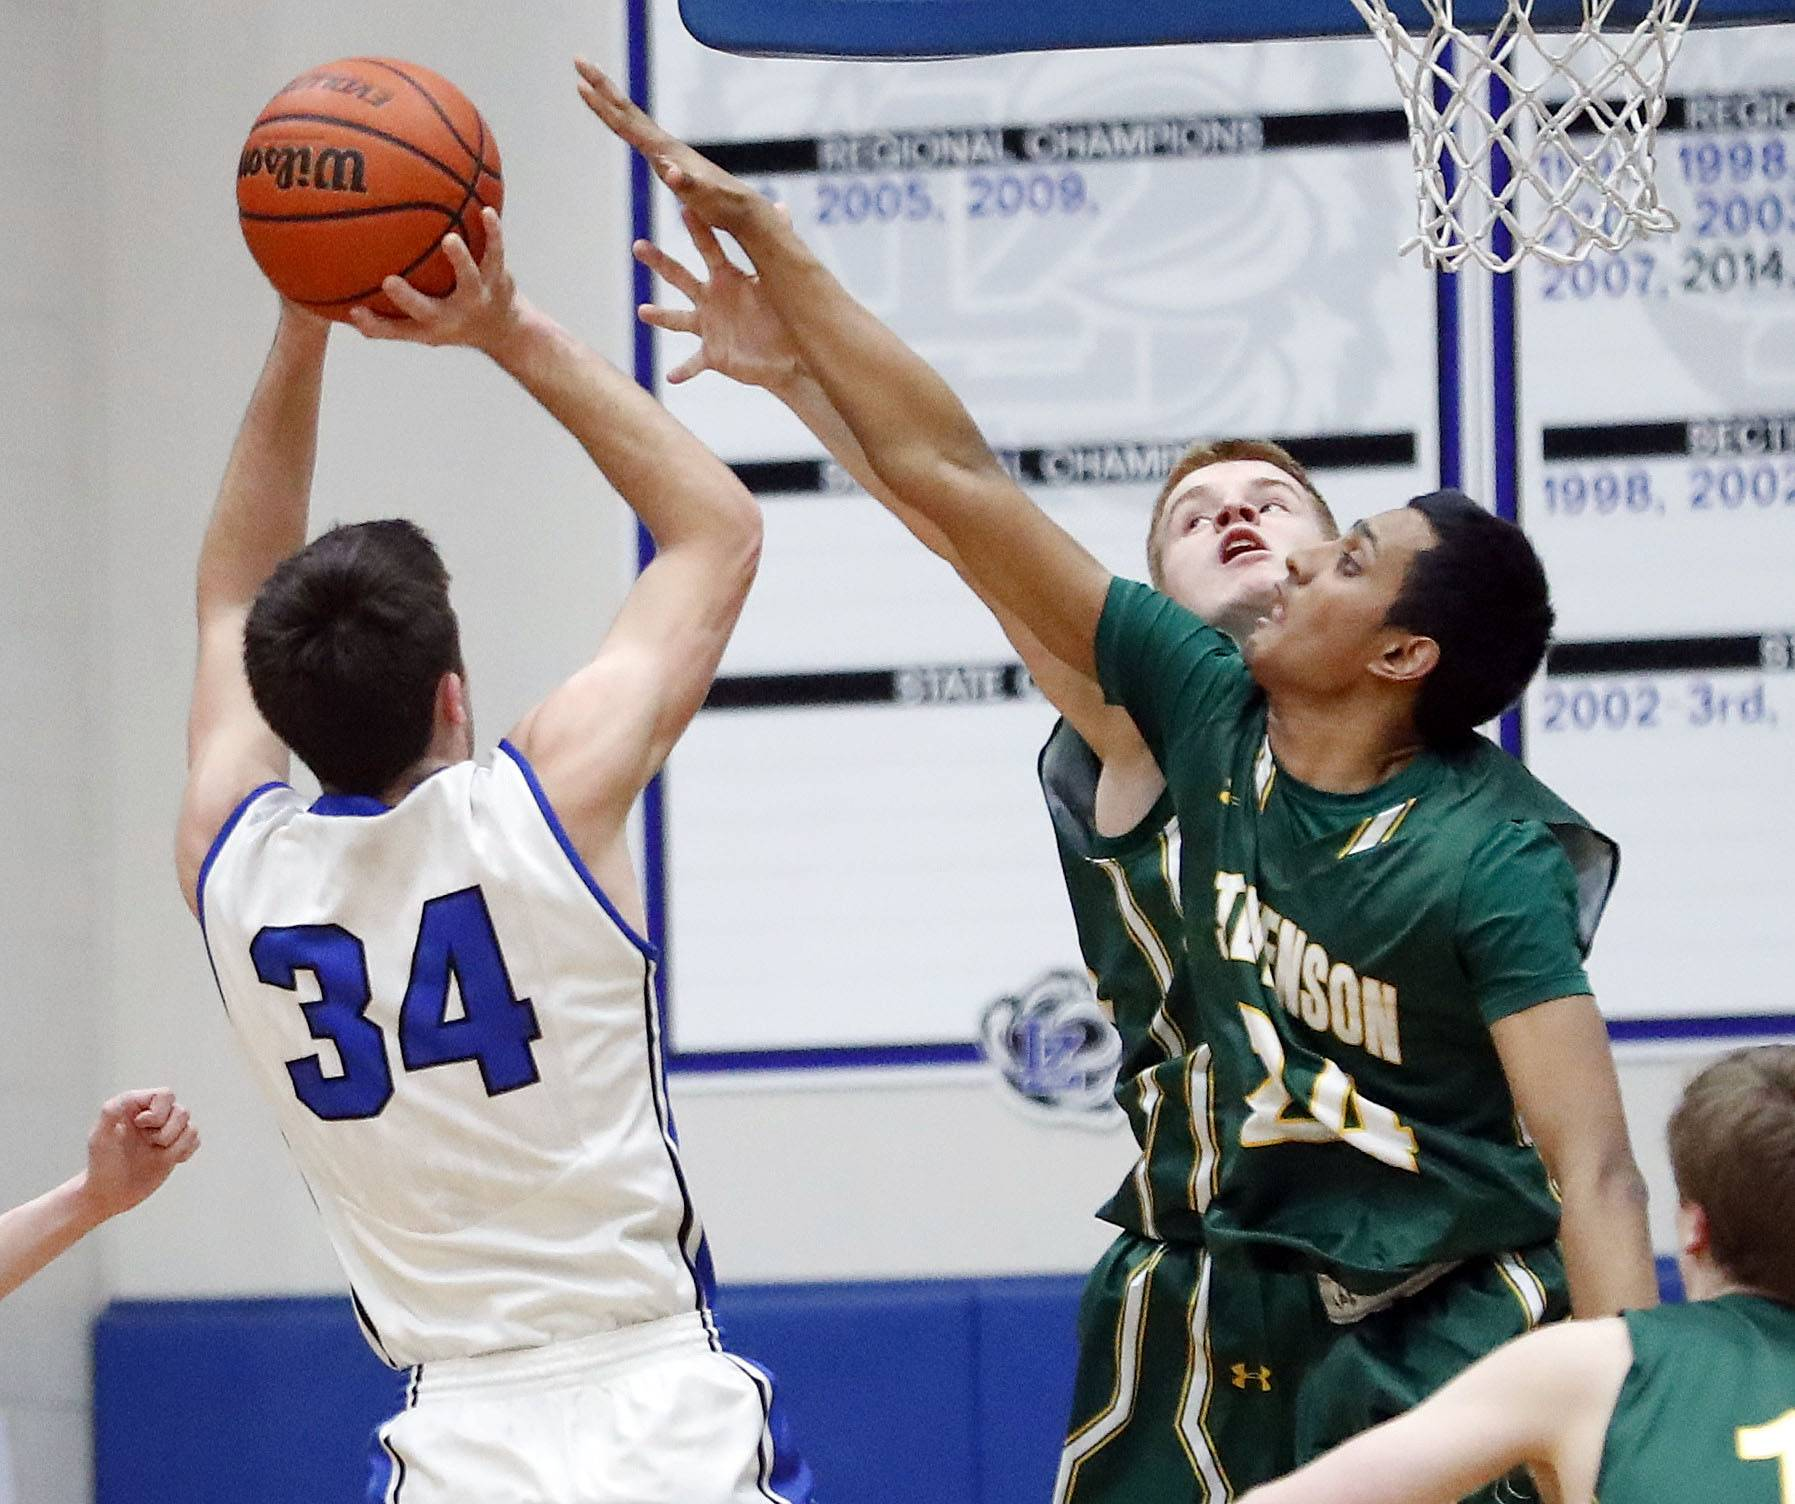 Lake Zurich's Ryan Kustor (34) shoots over Stevenson's Jackson Qualley and Samvit Ram on Tuesday night at Lake Zurich.